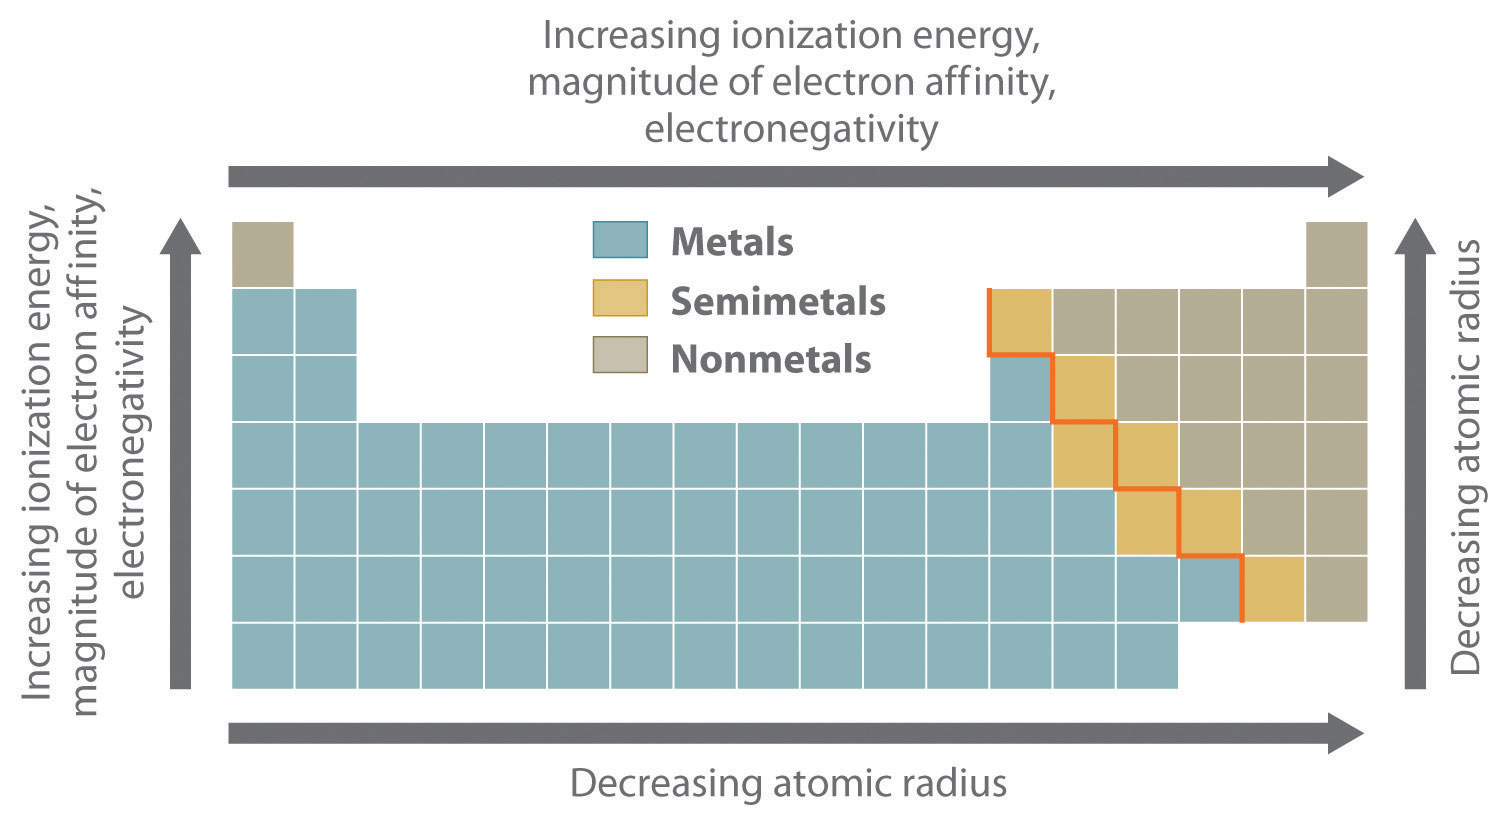 Periodic table metals nonmetals semiconductors periodic table semiconductors metals table periodic nonmetals table periodic semimetal gamestrikefo Images